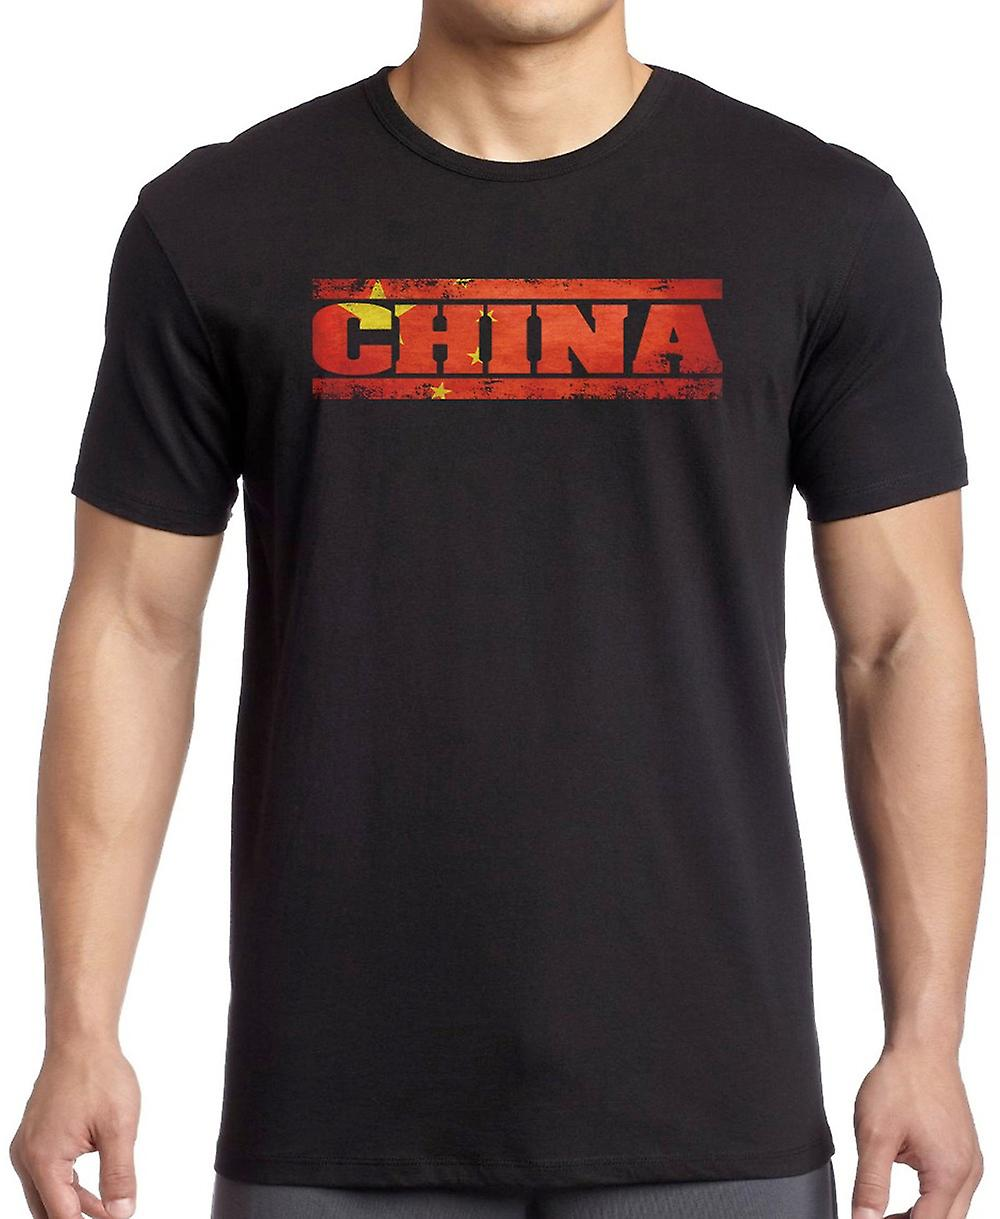 Bandiera cina cinese - parole T Shirt - 4xl